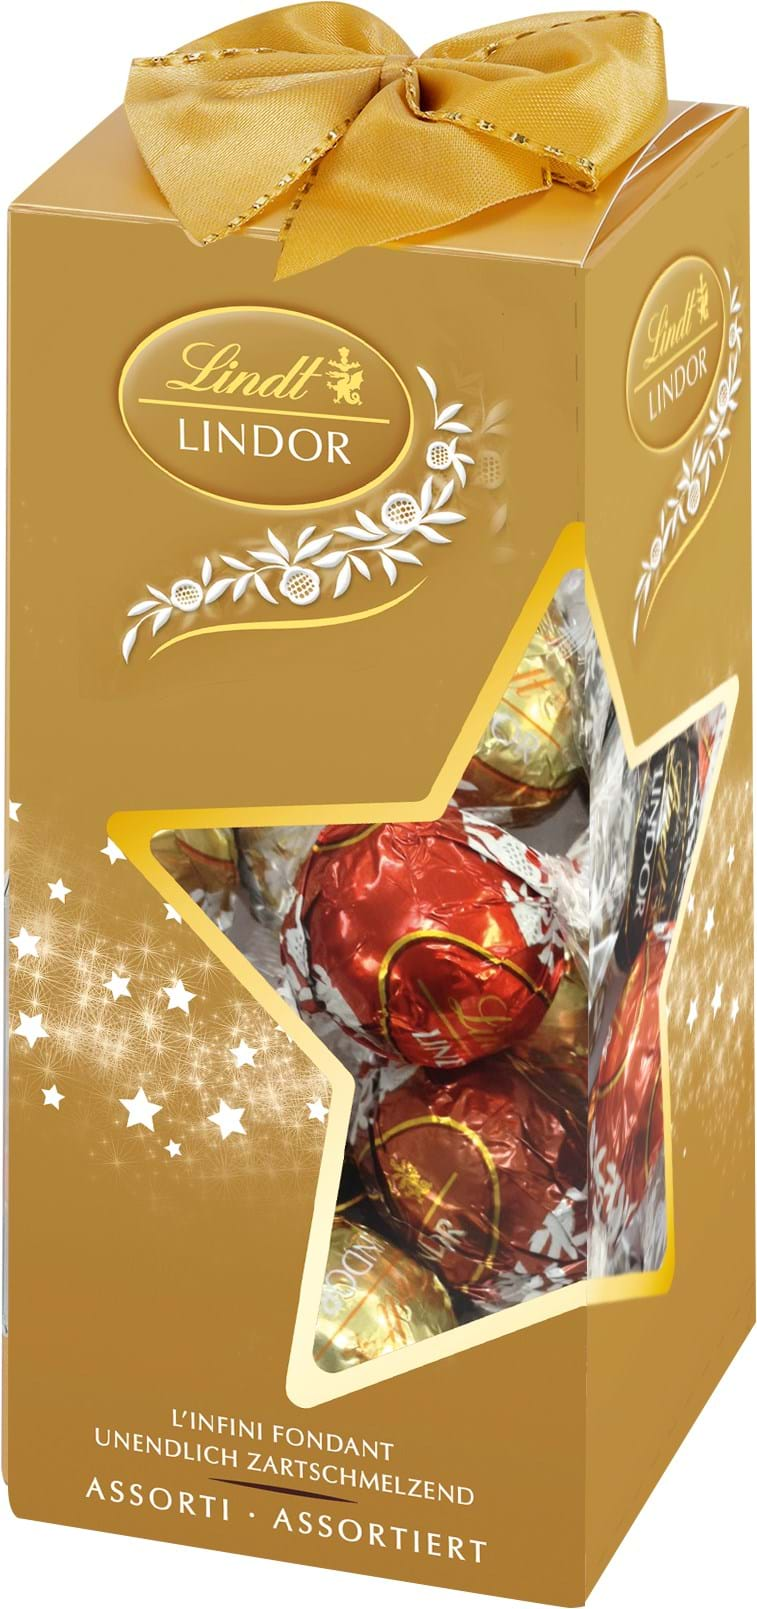 Lindor Assorted in gold star-silhouette box 350g